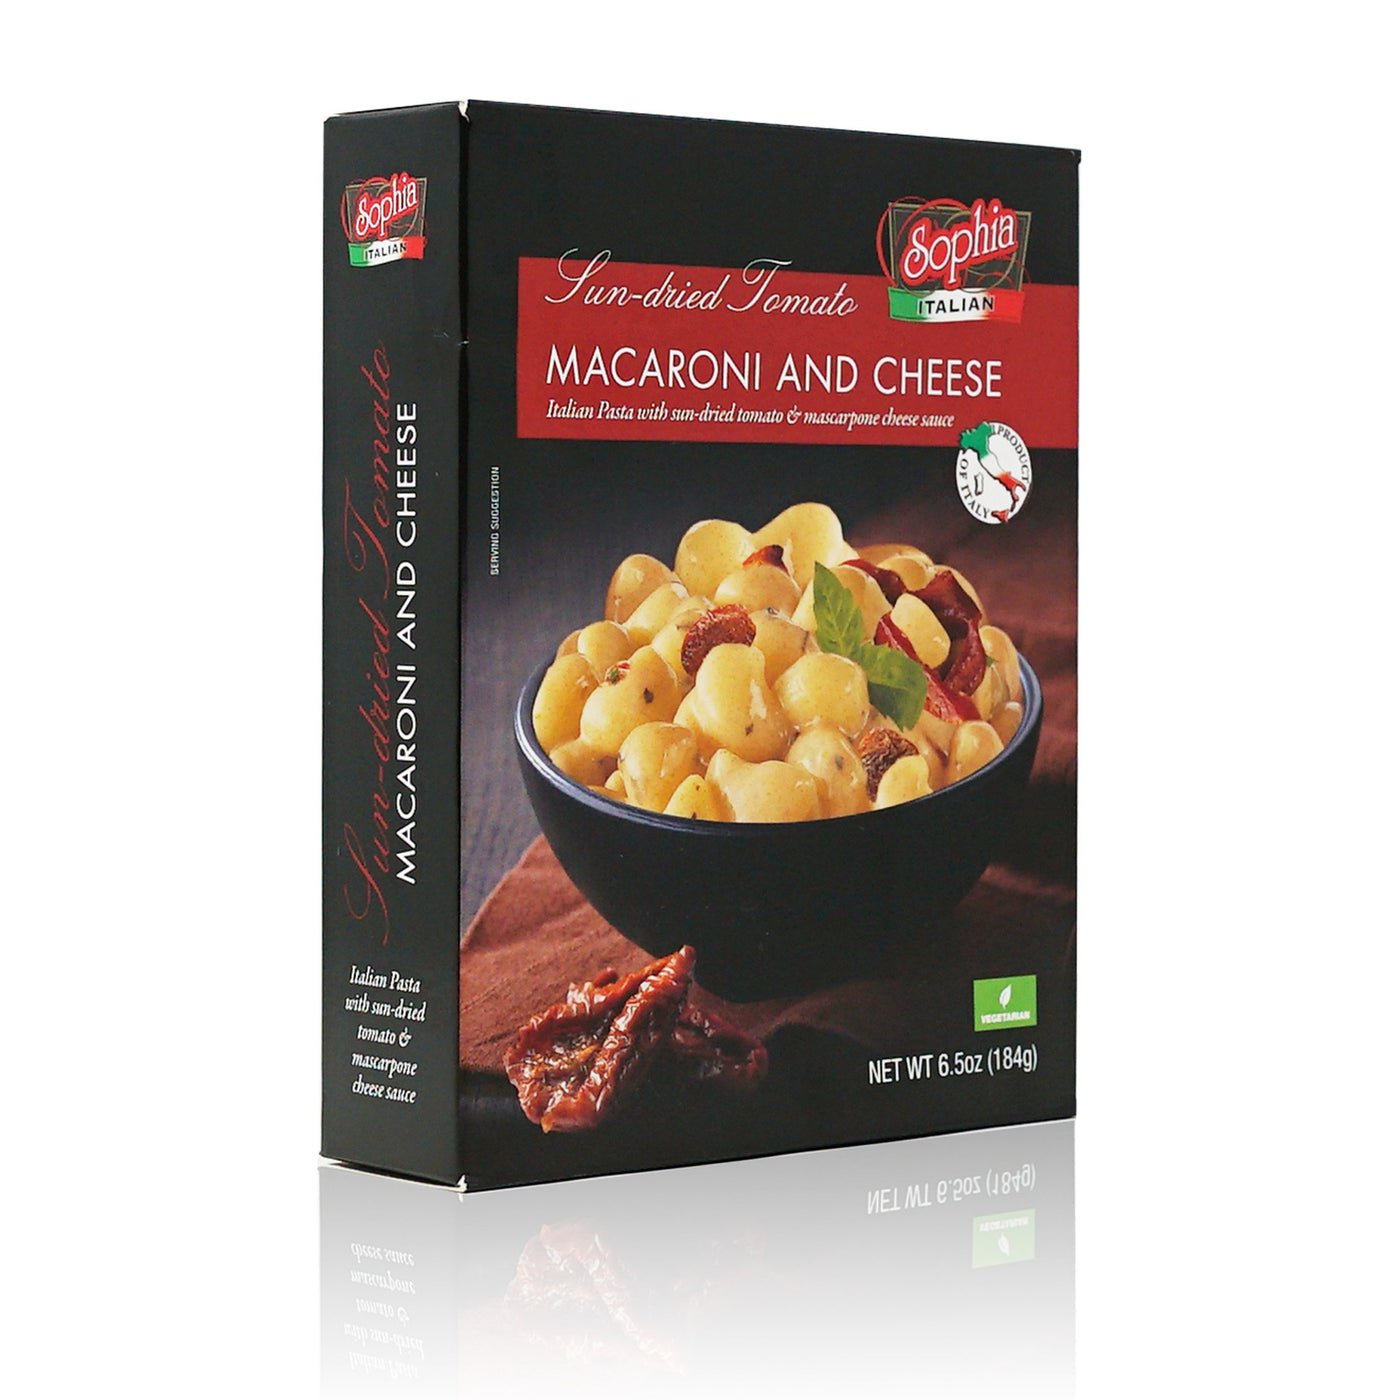 Sun Dried Tomato Macaroni and Cheese